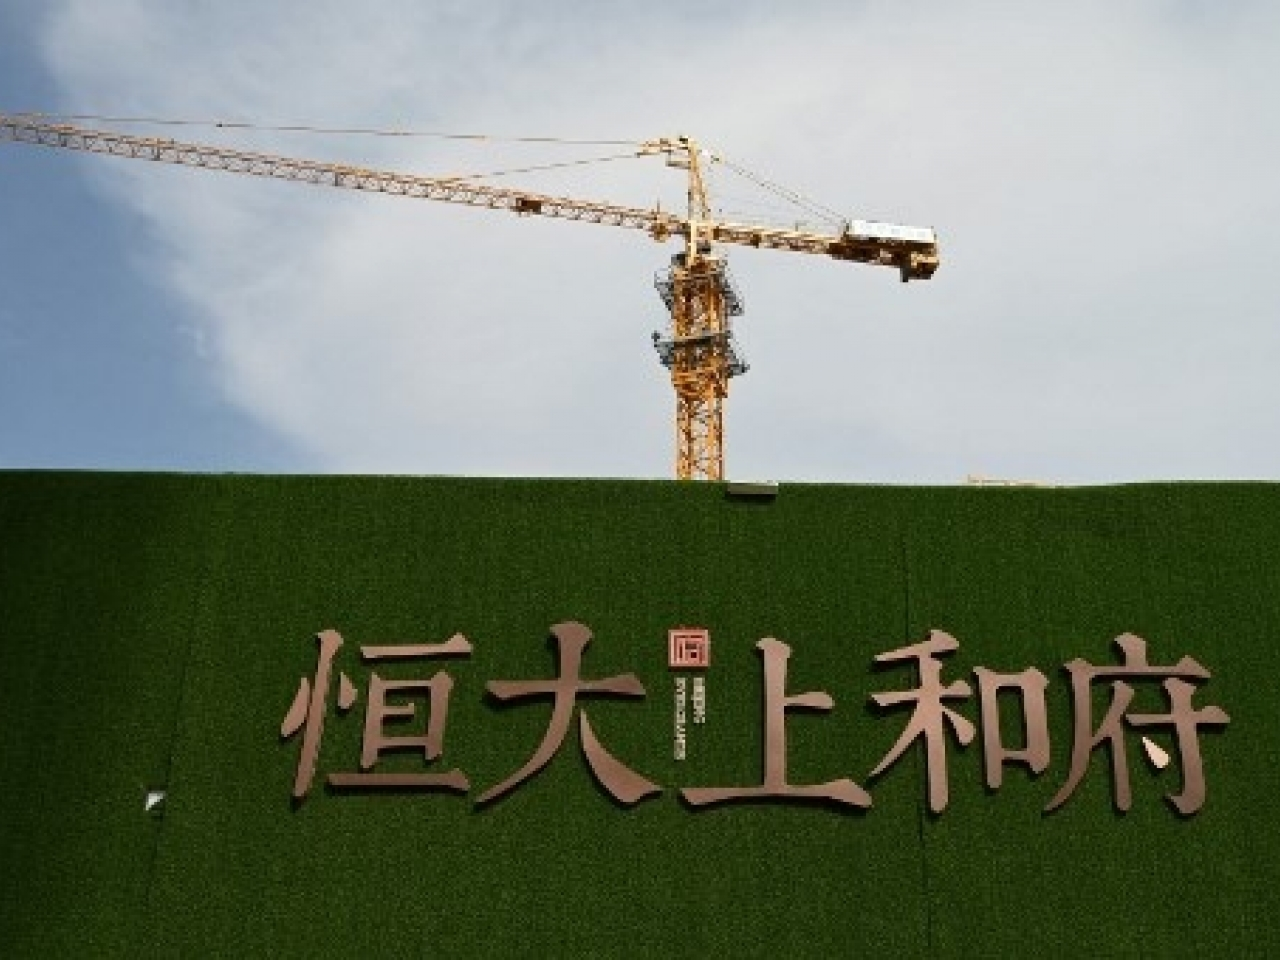 The Evergrande name and logo are seen outside the construction site of an Evergrande housing complex in Beijing. Photo: AFP